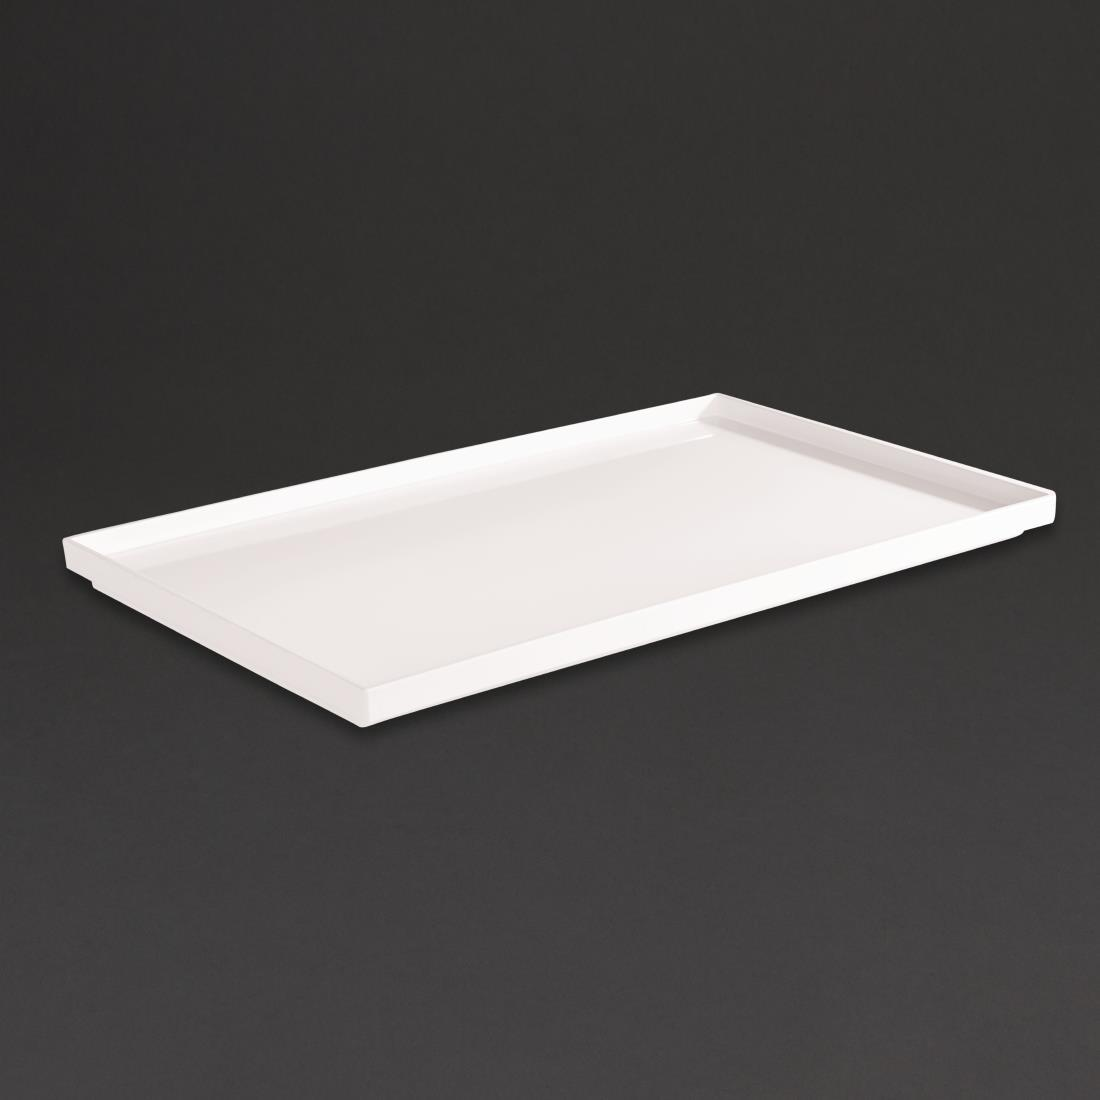 DT768 - APS Asia+  White Tray GN 1/1 - Each - DT768